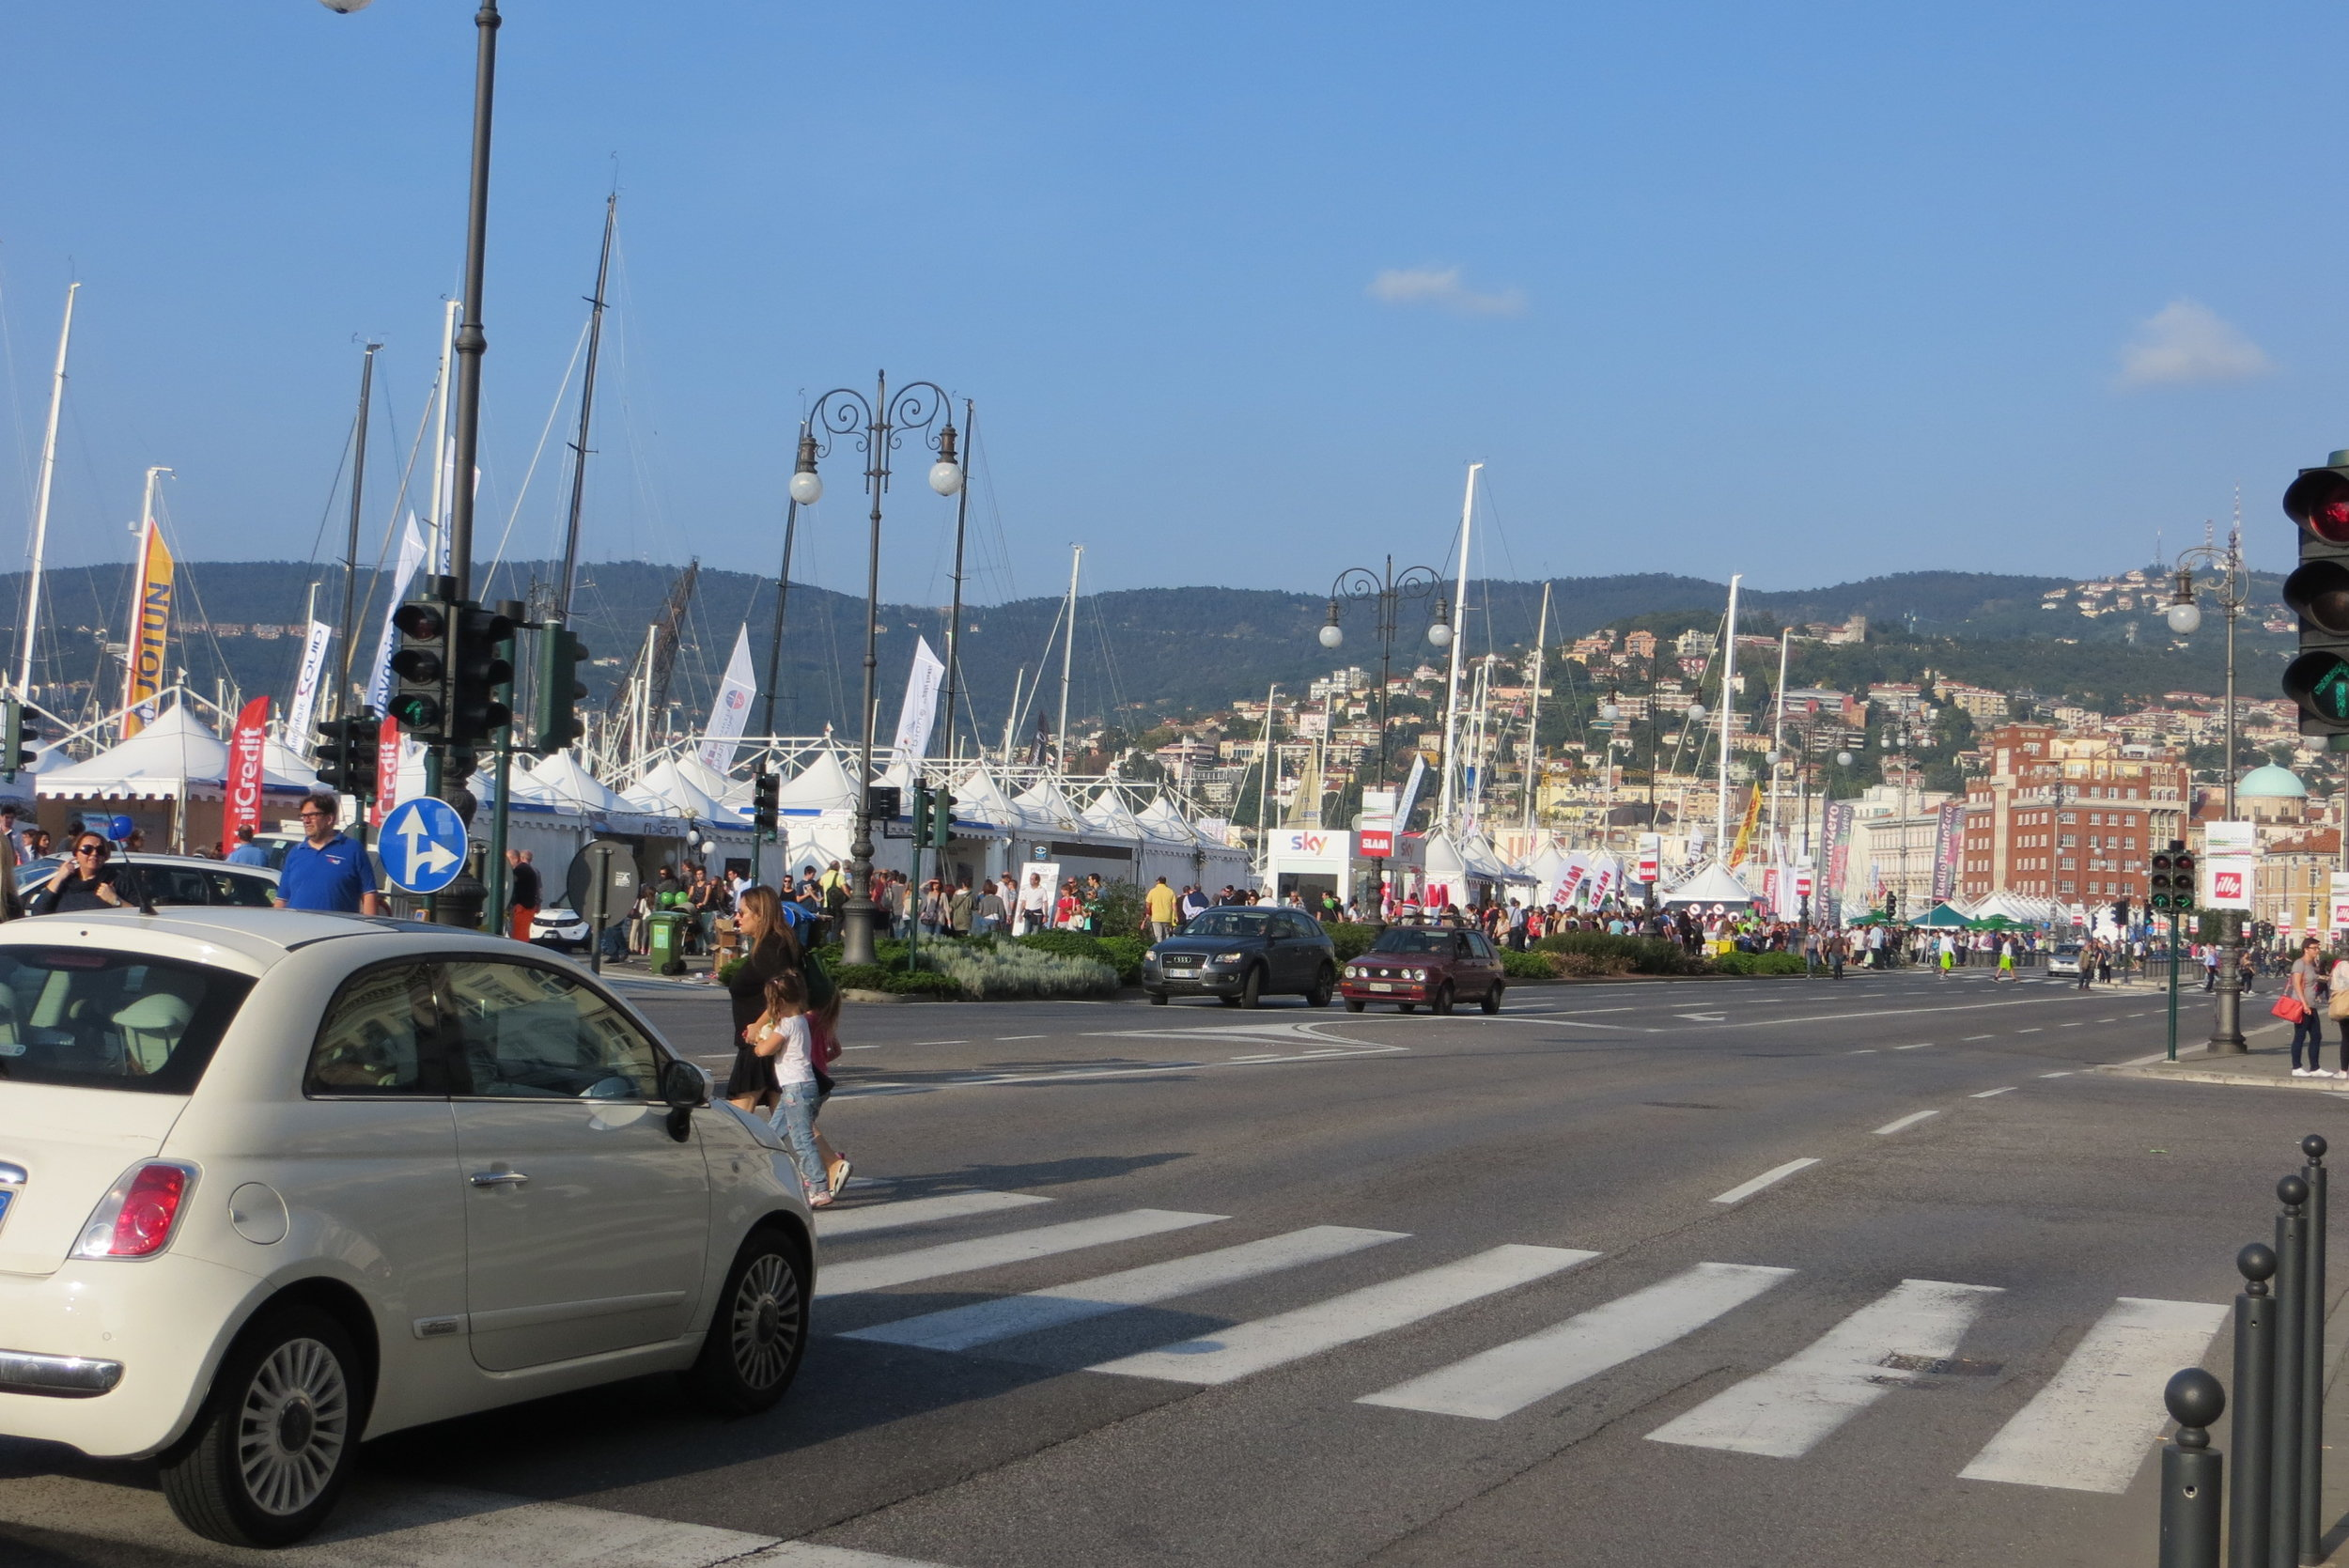 The Riva waterfront during the Barcolana sailing festival week in Trieste